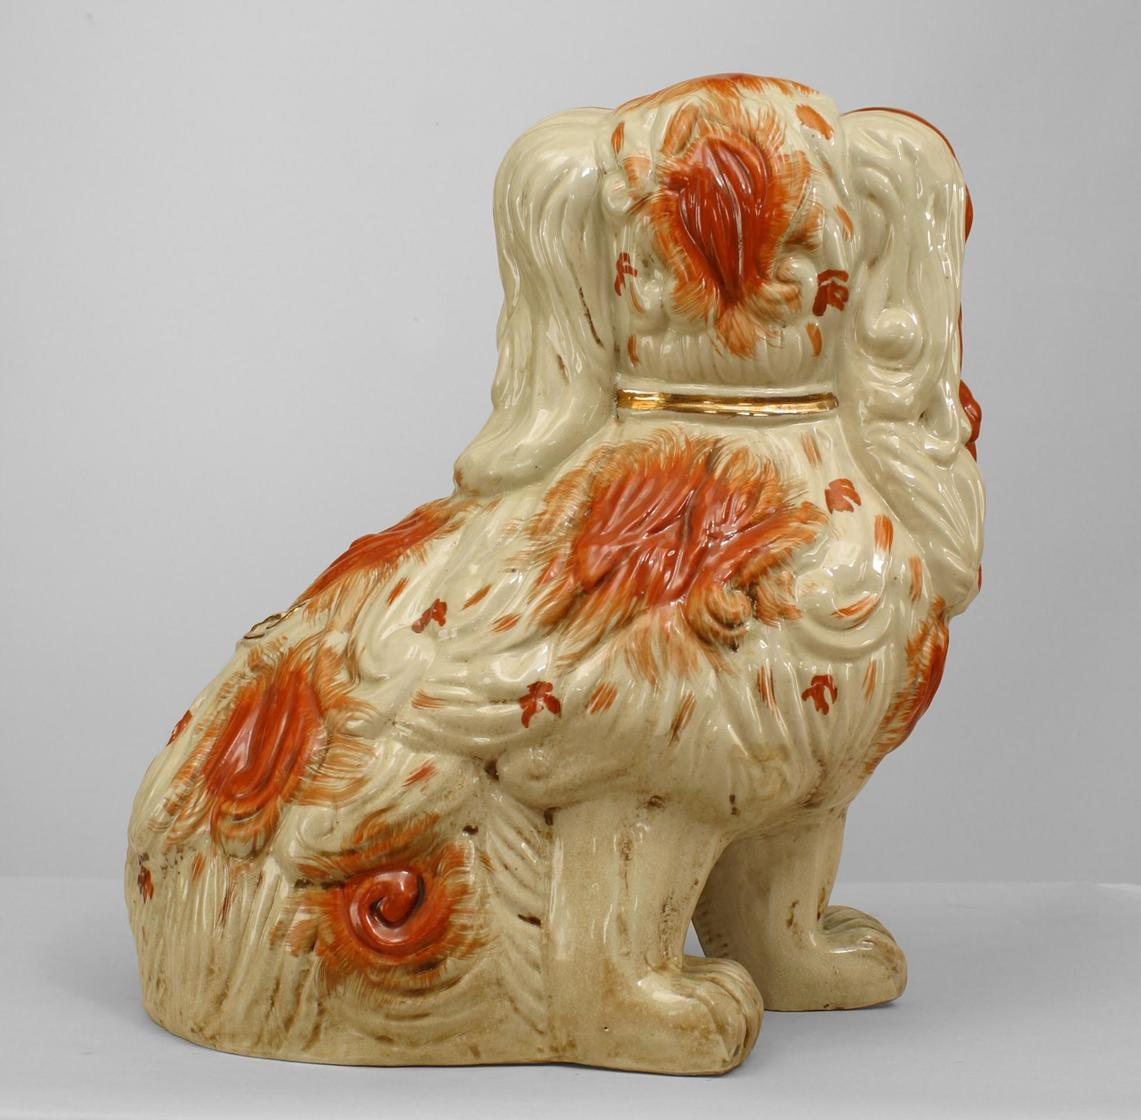 British Pair of Early 20th Century English Staffordshire Spaniel Sculptures For Sale